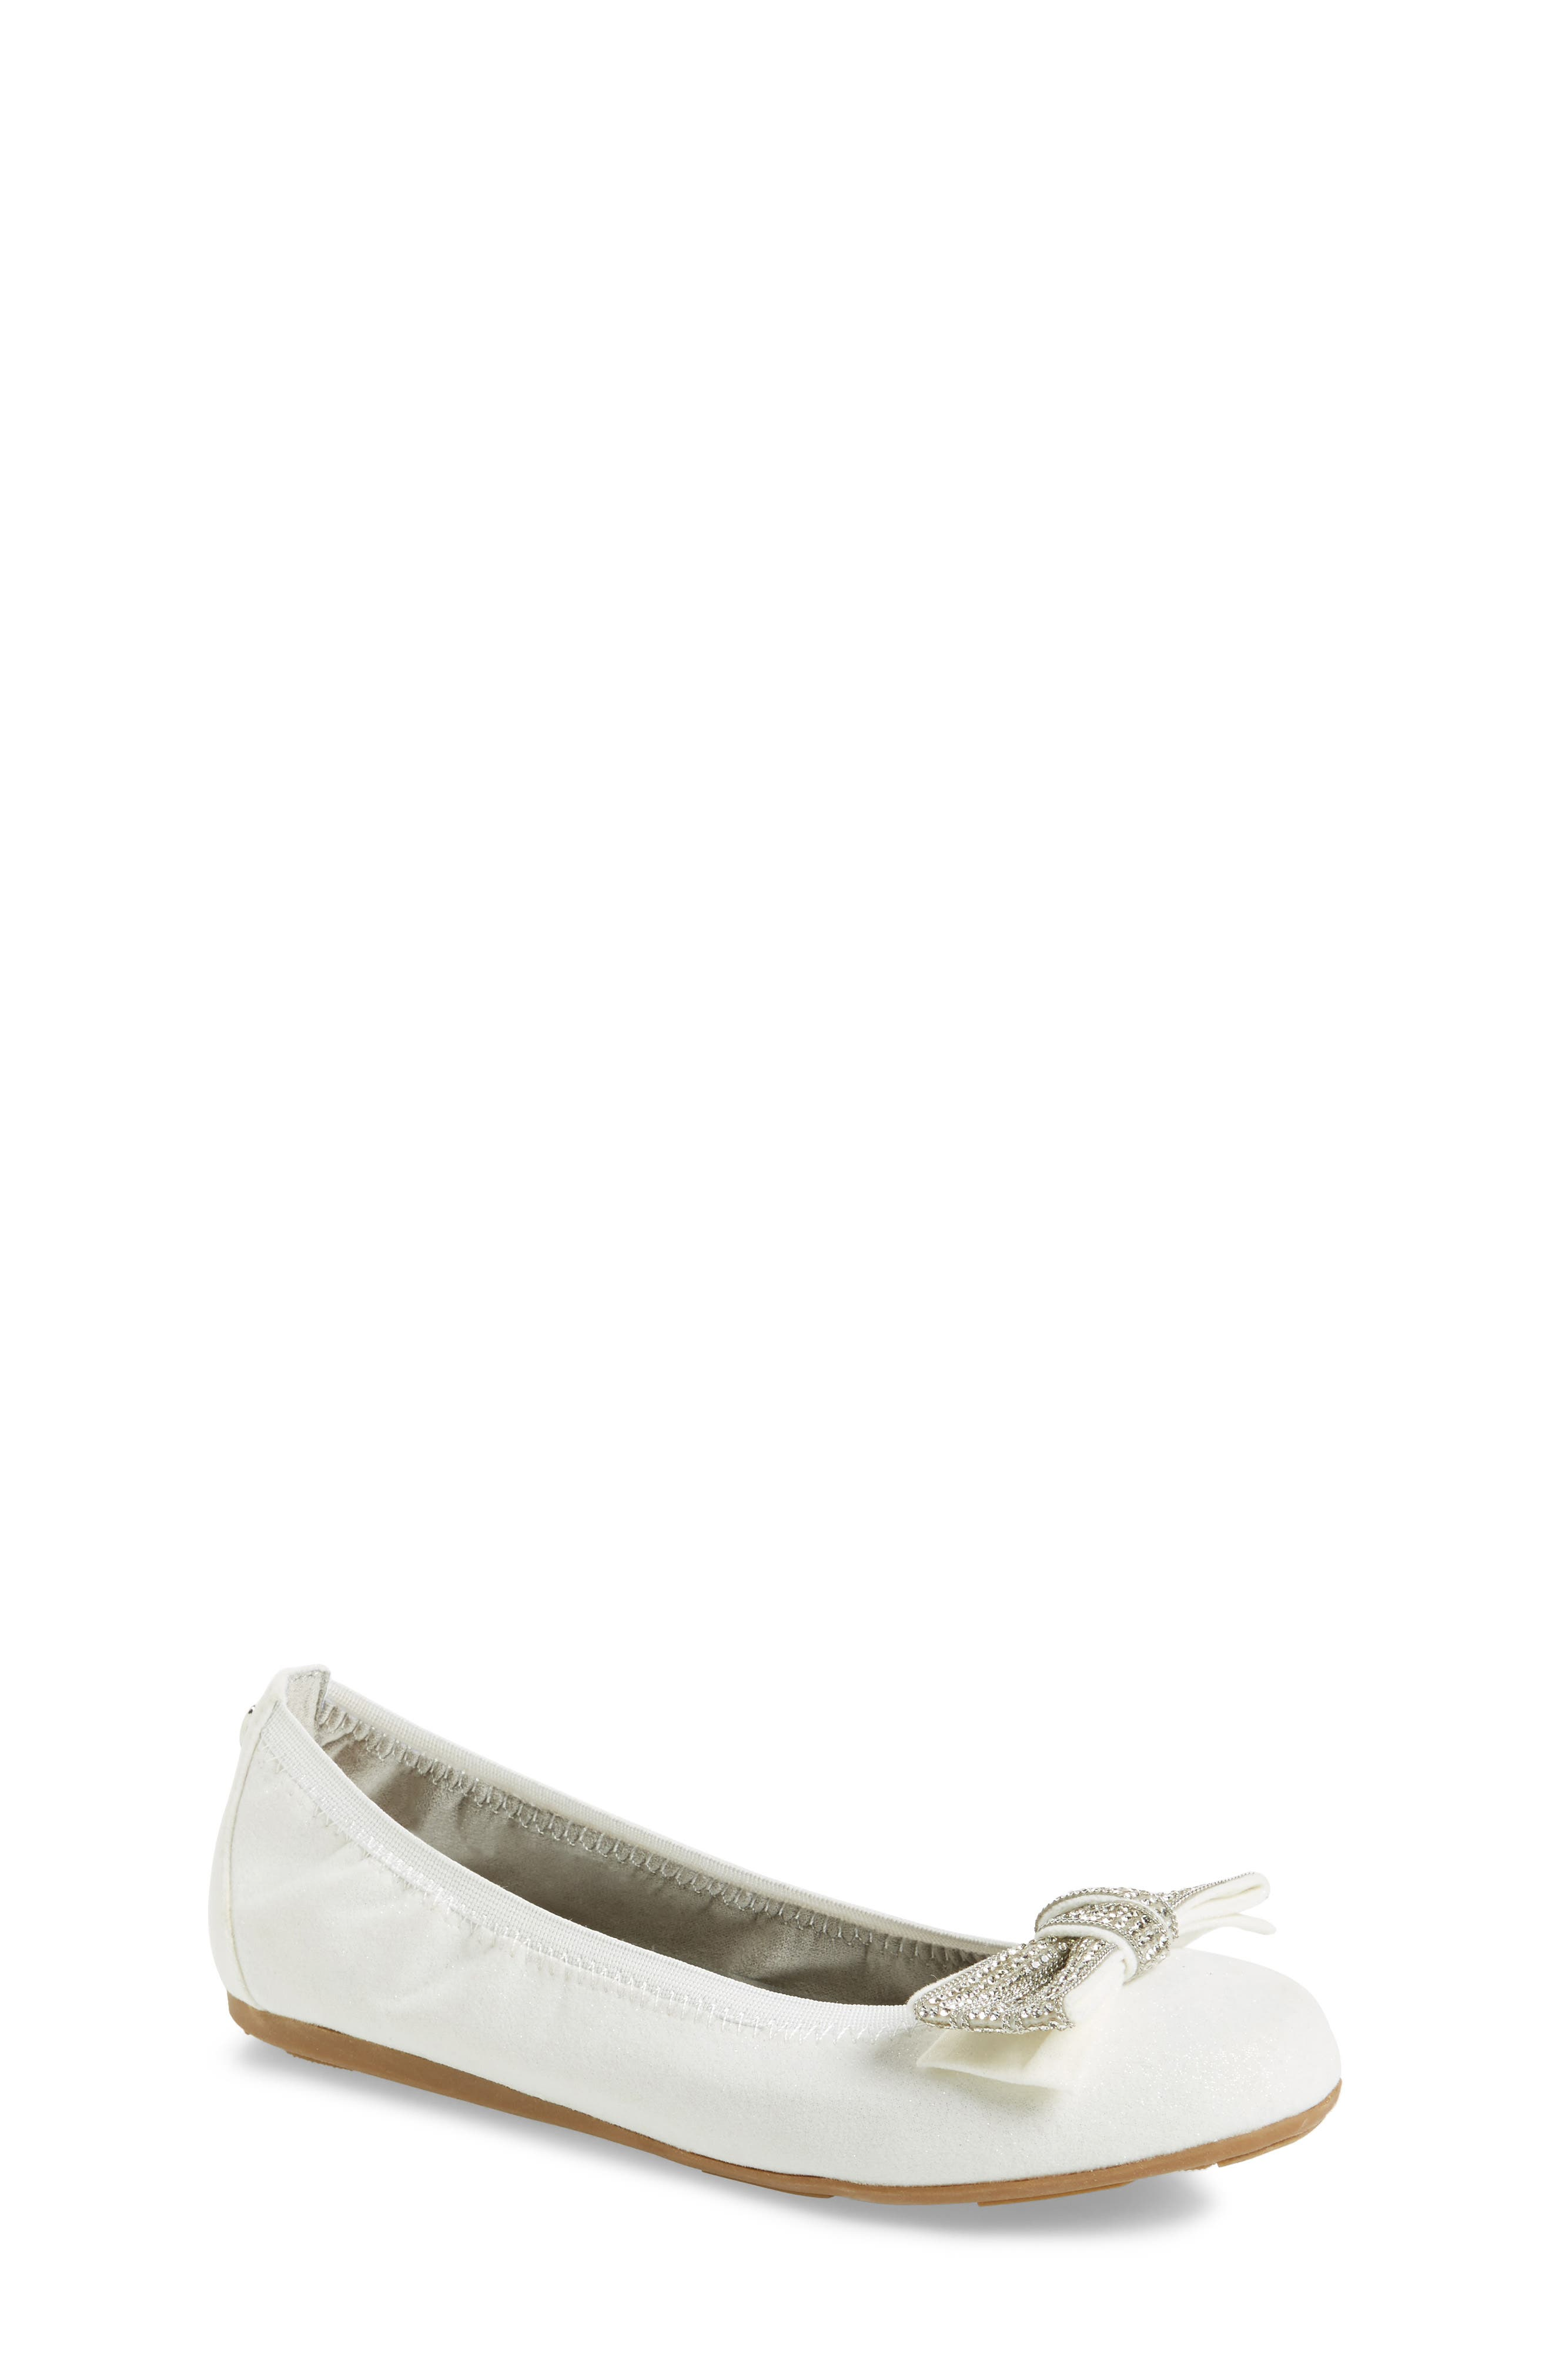 Fannie Embellished Bow Ballet Flat,                             Main thumbnail 2, color,